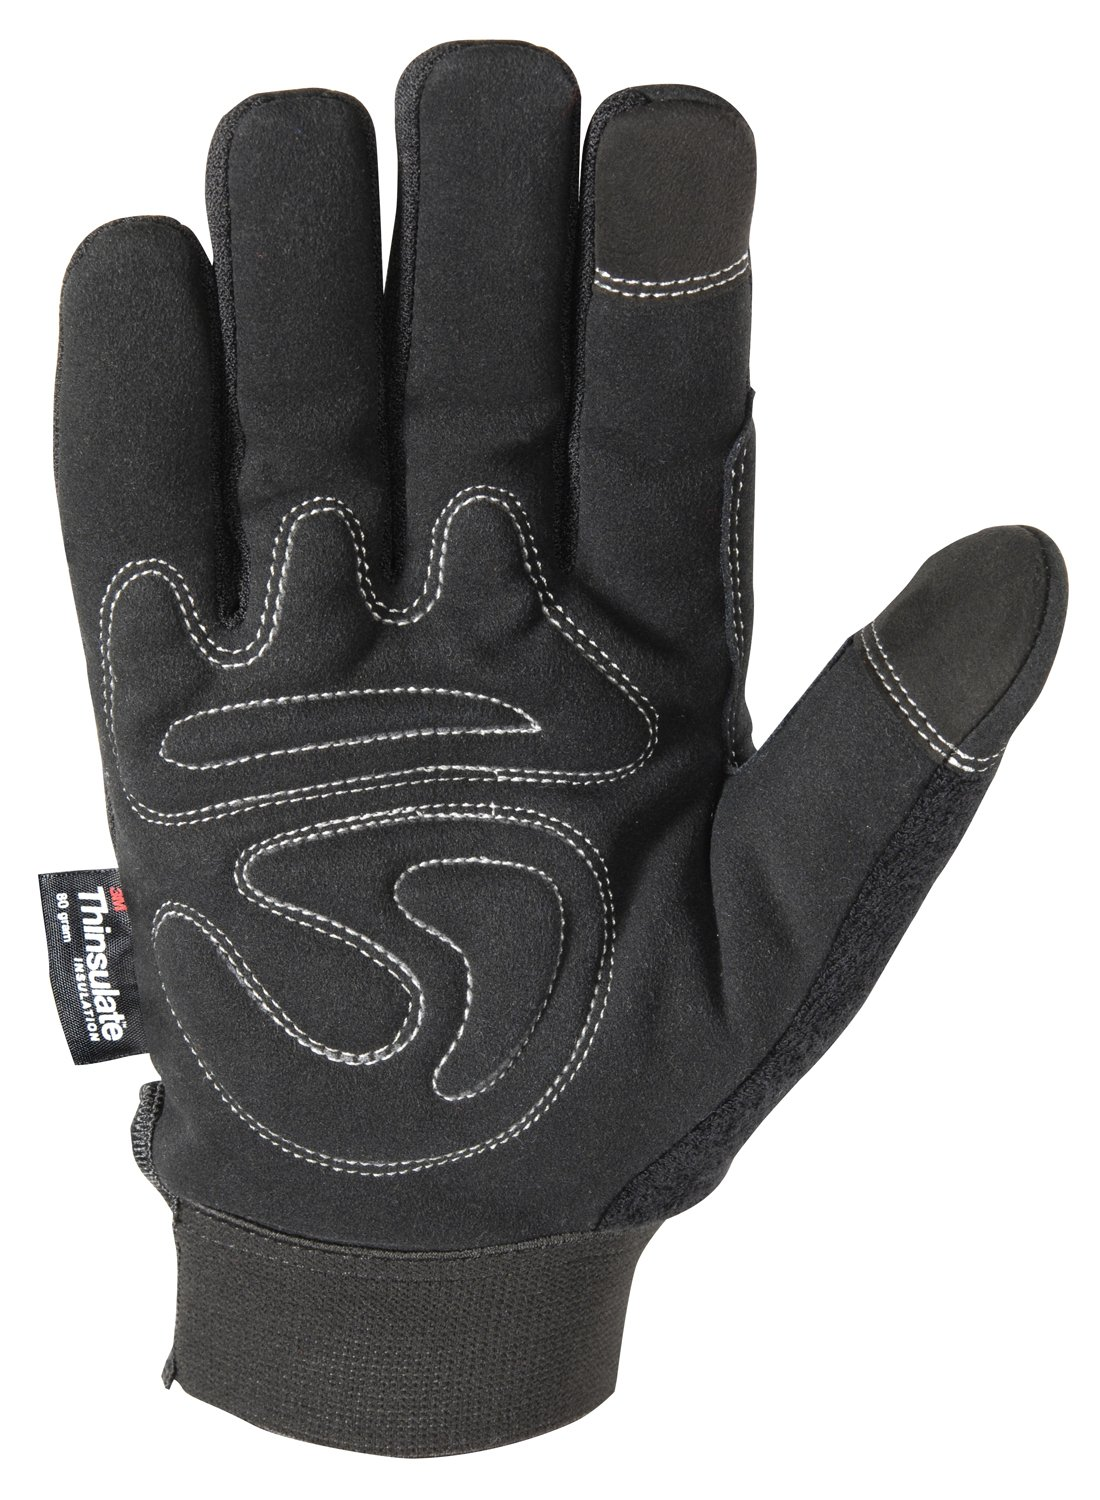 Leather gloves mens amazon - Wells Lamont Black Winter Gloves With Touch Screen Capability 80 Gram Thinsulate Insulation Large 7760l Amazon Com